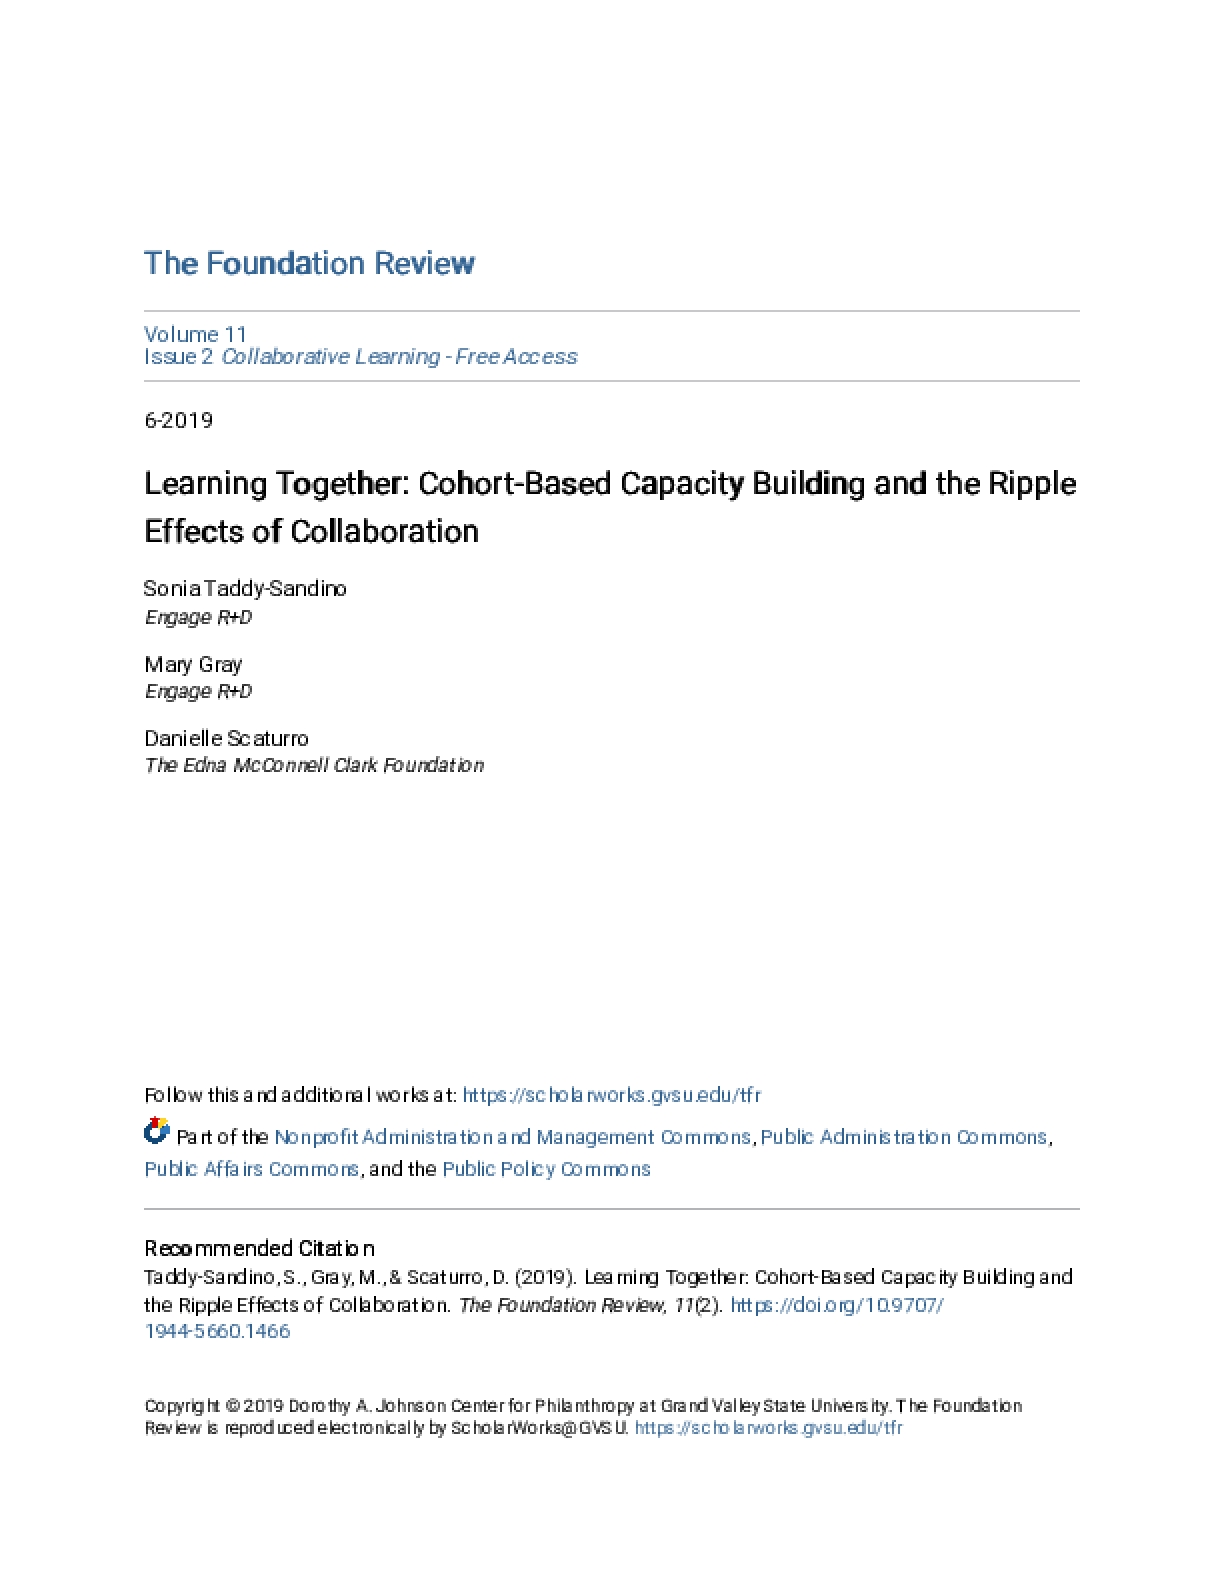 Learning Together: Cohort-Based Capacity Building and the Ripple Effects of Collaboration